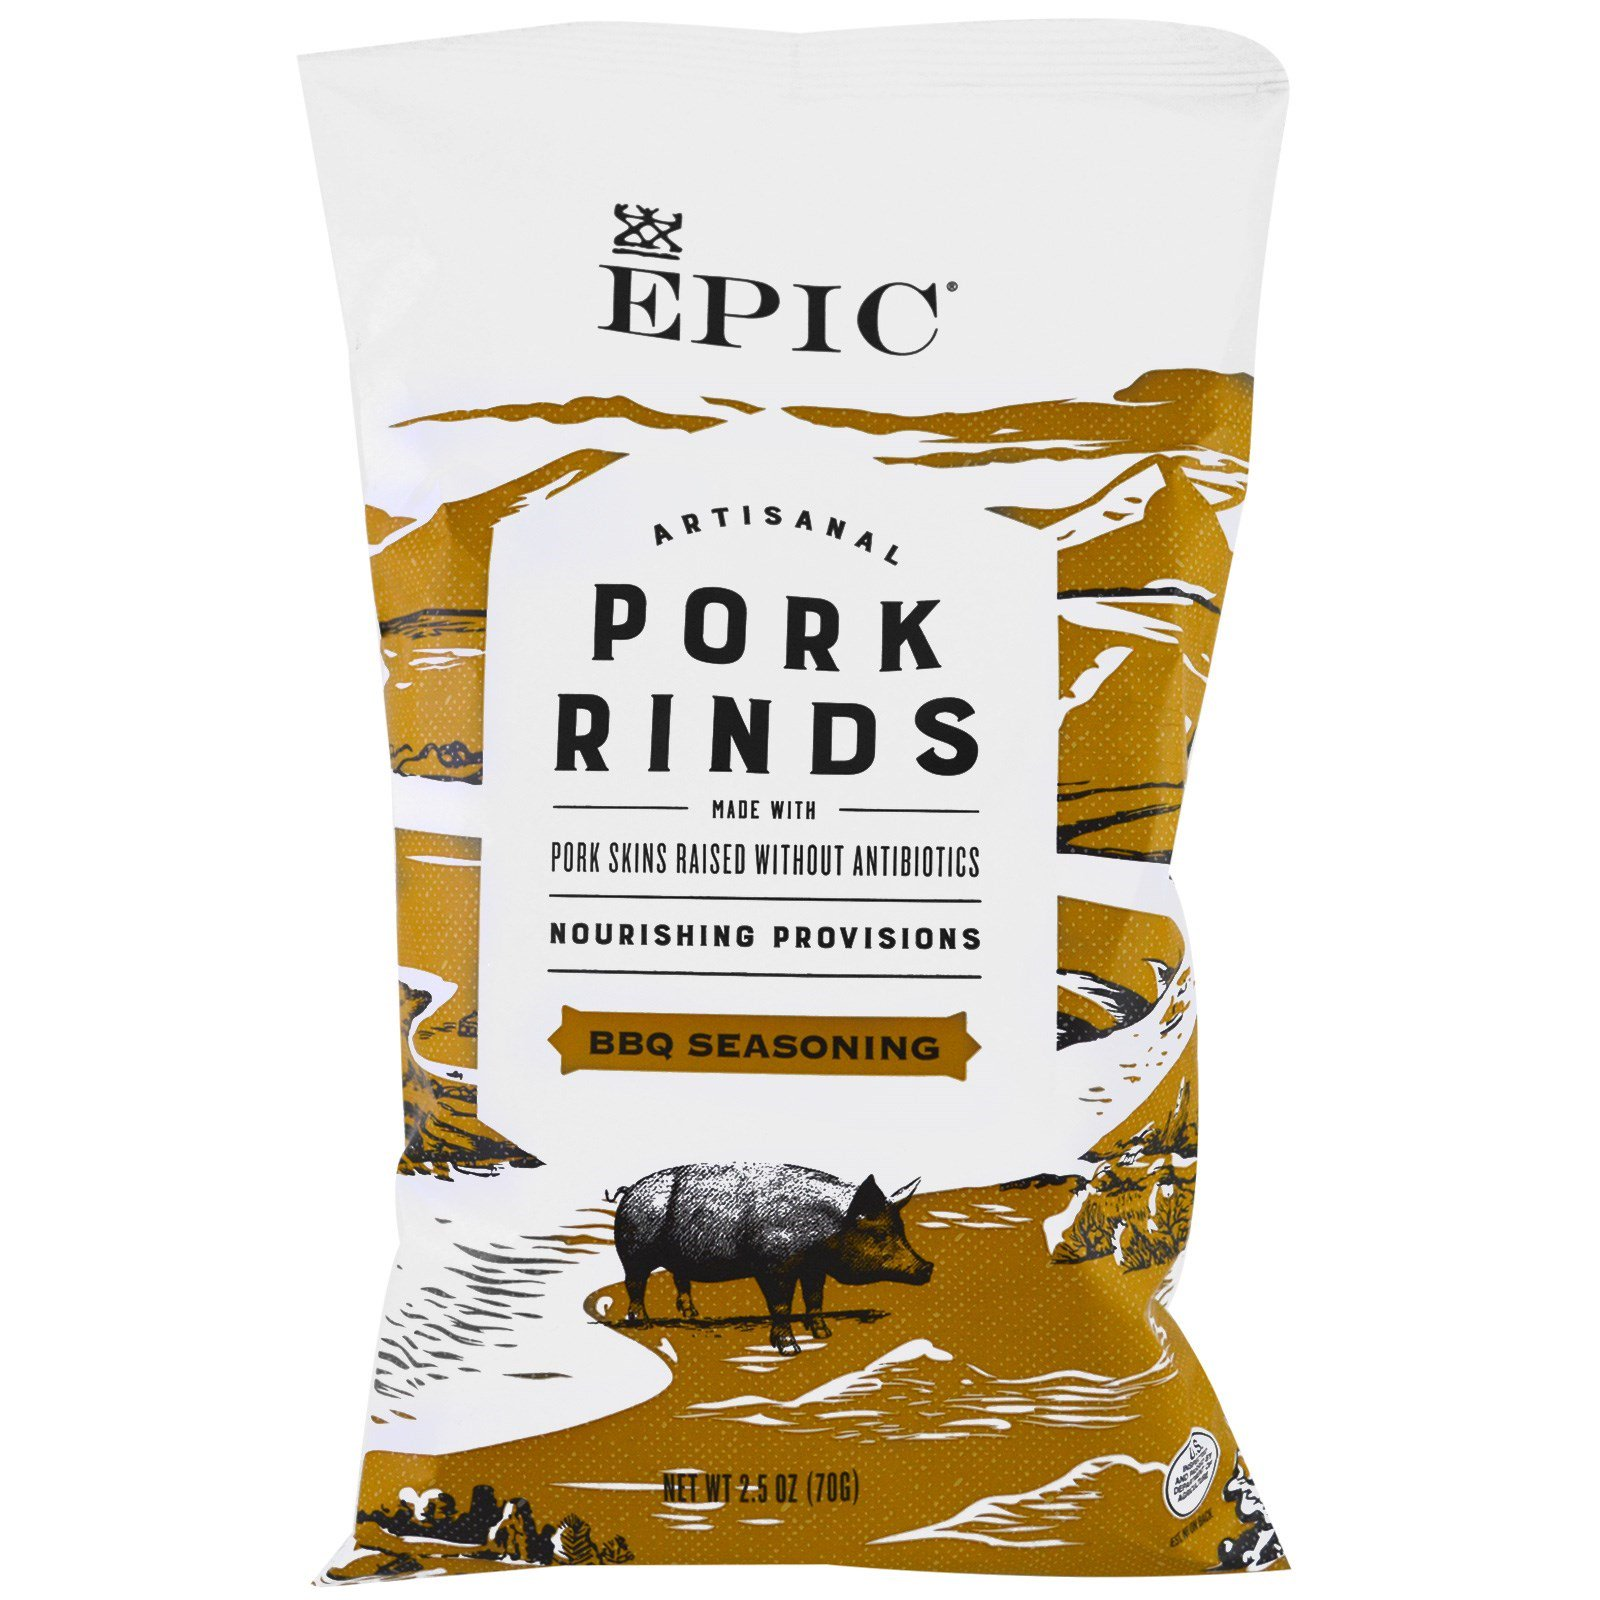 Epic Bar, Artisanal Pork Rinds, BBQ Seasoning, 2.5 oz (pa...